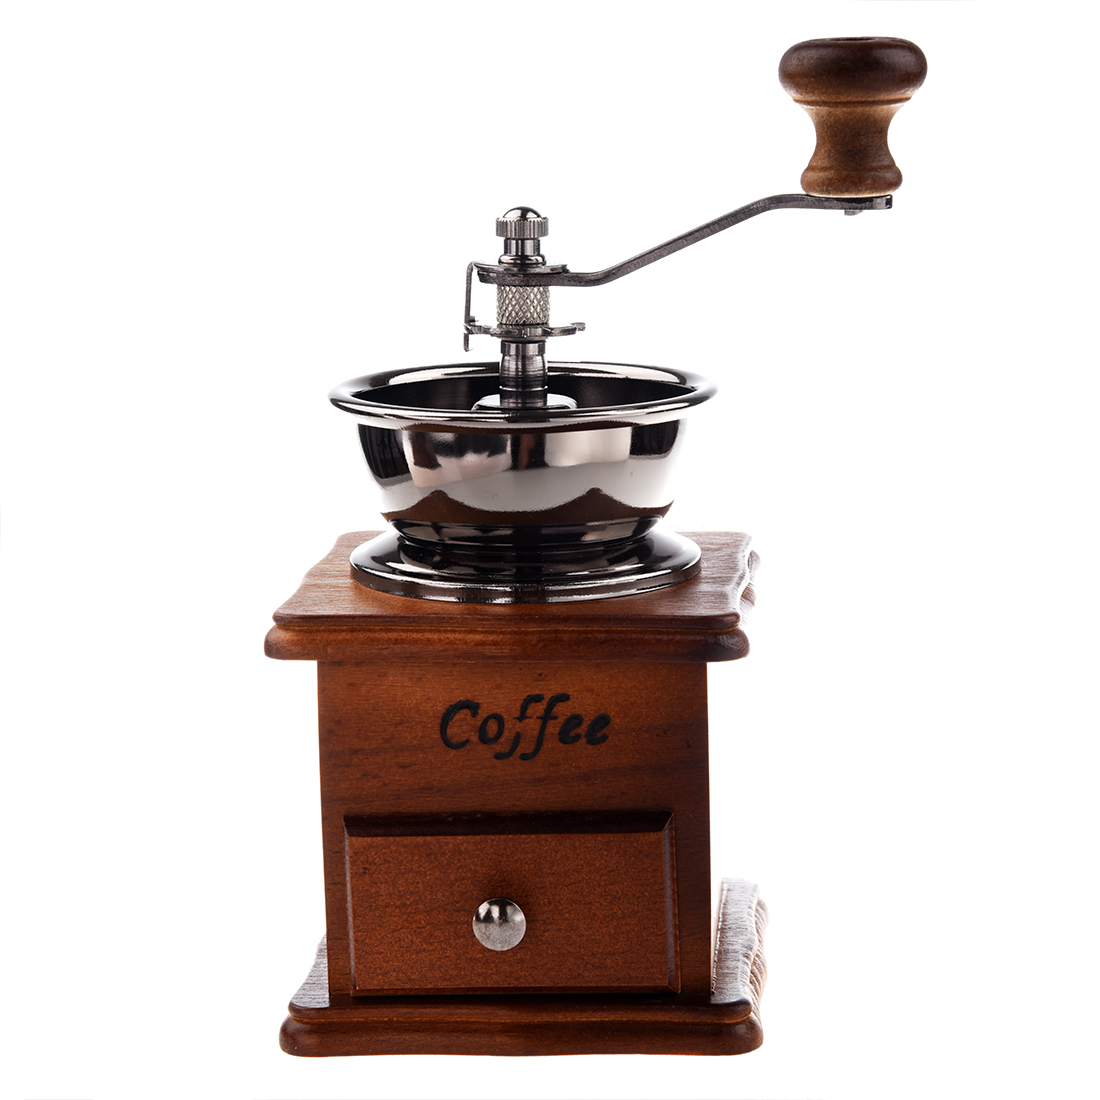 Manual Coffee Grinder Coffee Bean Mill Retro Style Wood Wooden Nut Pepper Seeds Spice Mini Grinder For Home High Quality 5306 classical wooden manual pepper spice mill grinder muller wood